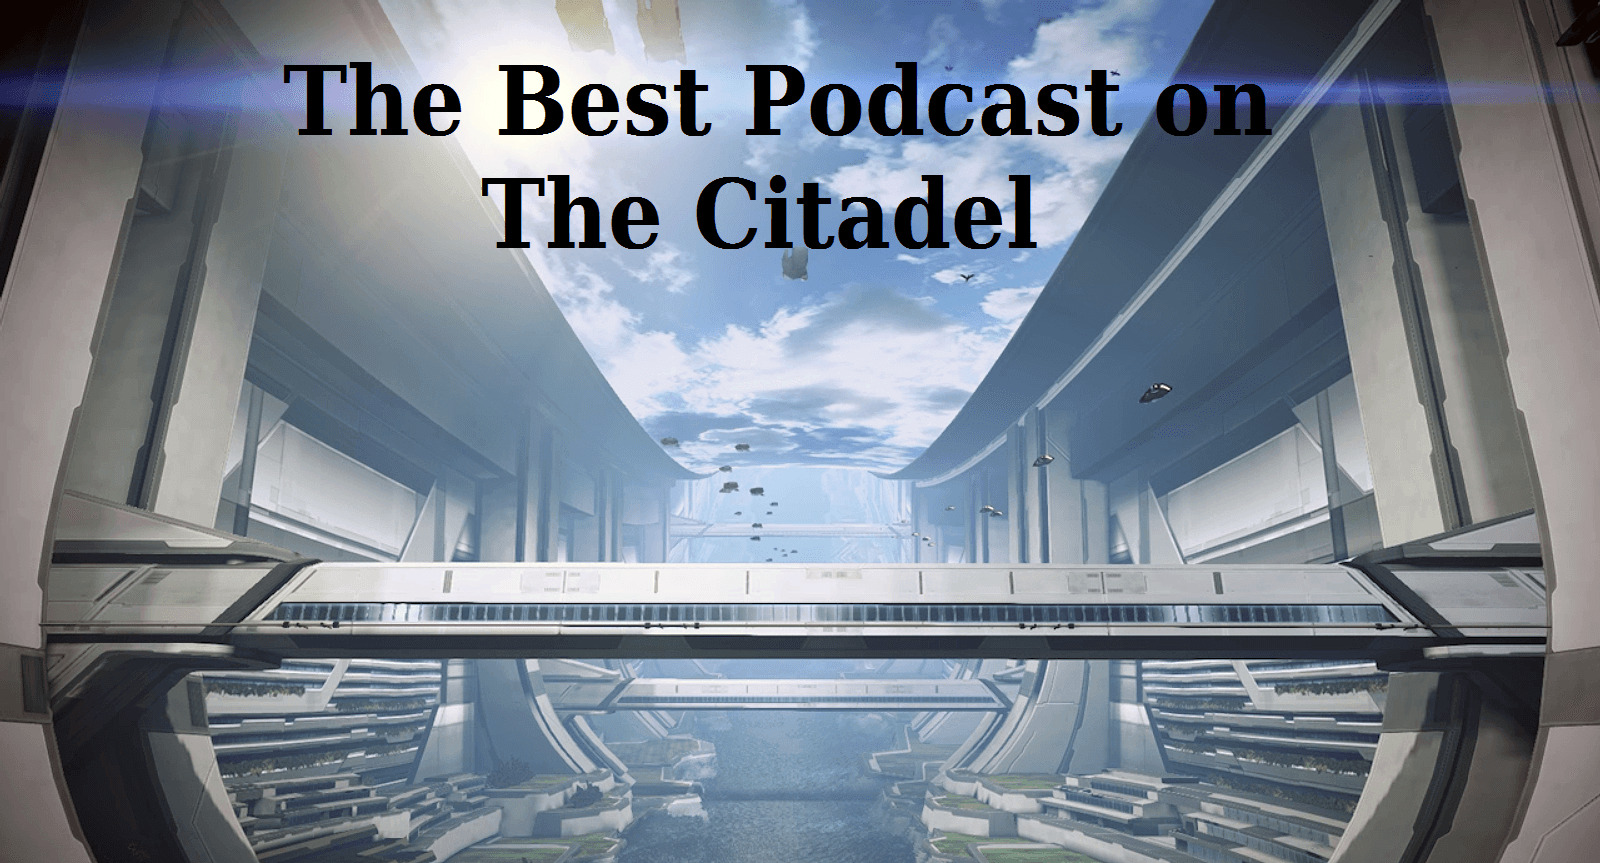 The Best Podcast on the Citadel, Ep. 34